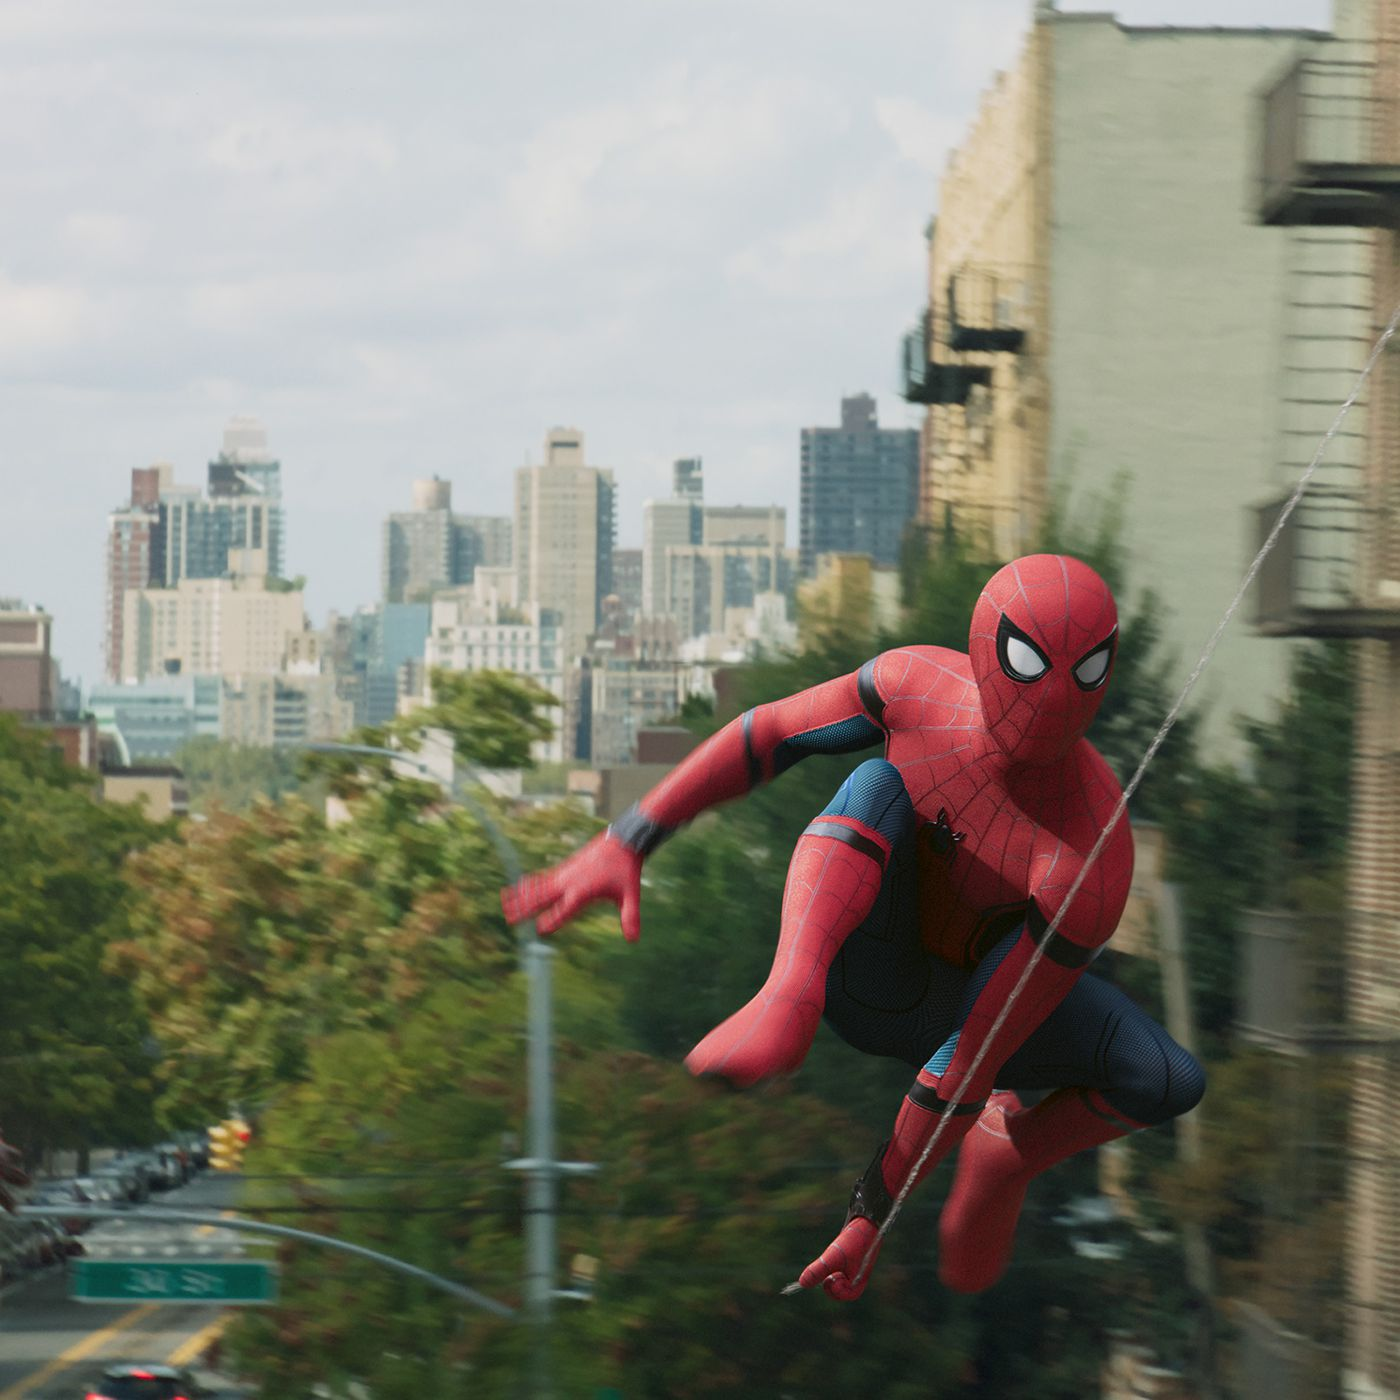 Spider-Man: Homecoming's big character reveal might not mean